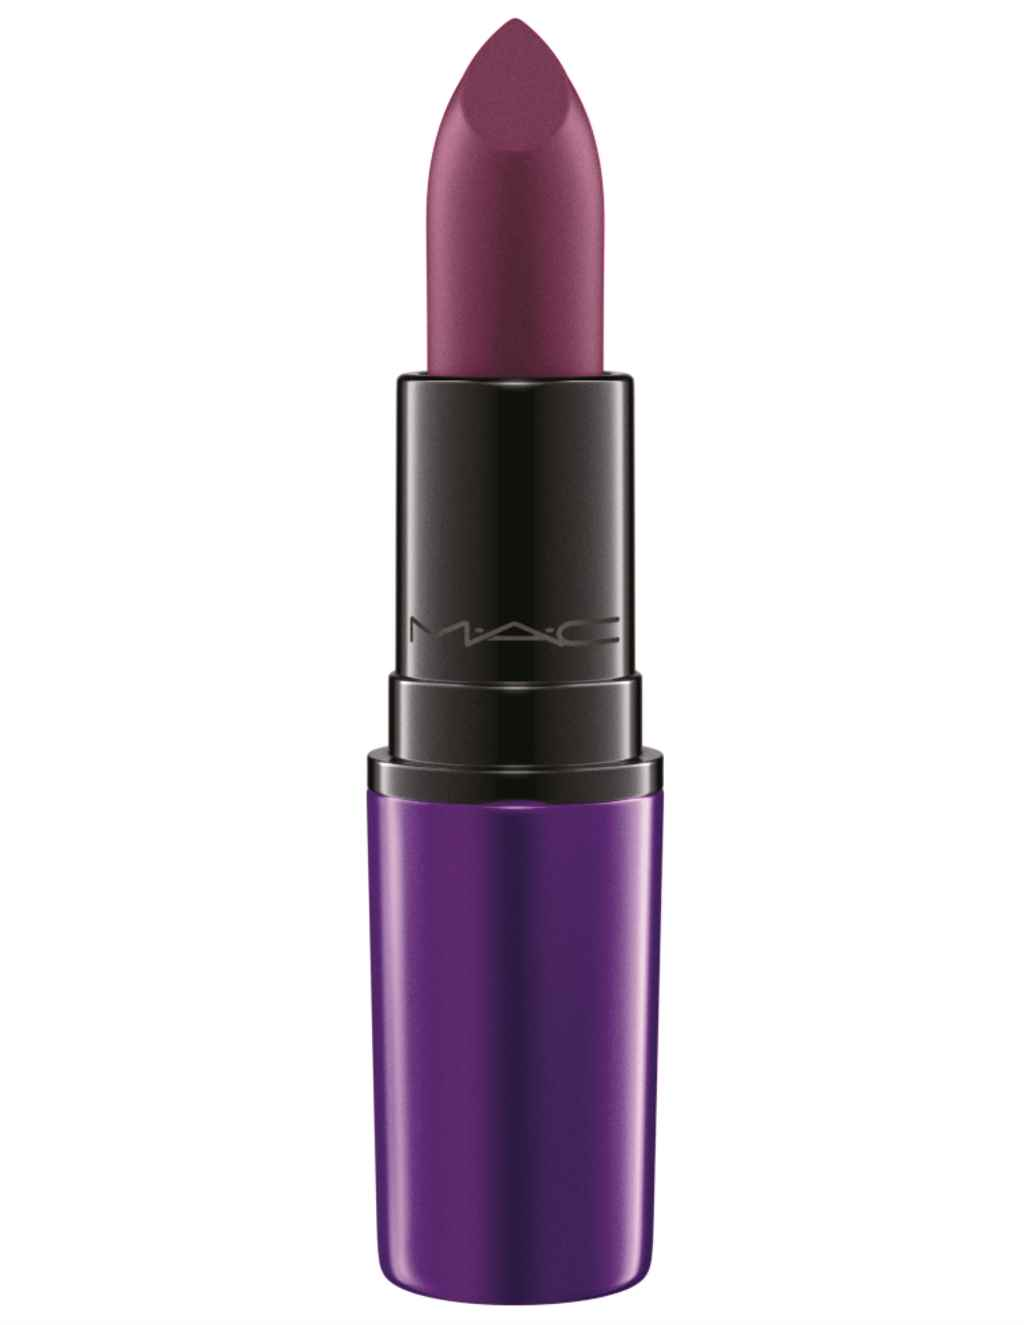 MAC_HolidayColour_MacMagicoftheNight_LipStick_EveningRendezvous_300dpiCMYK